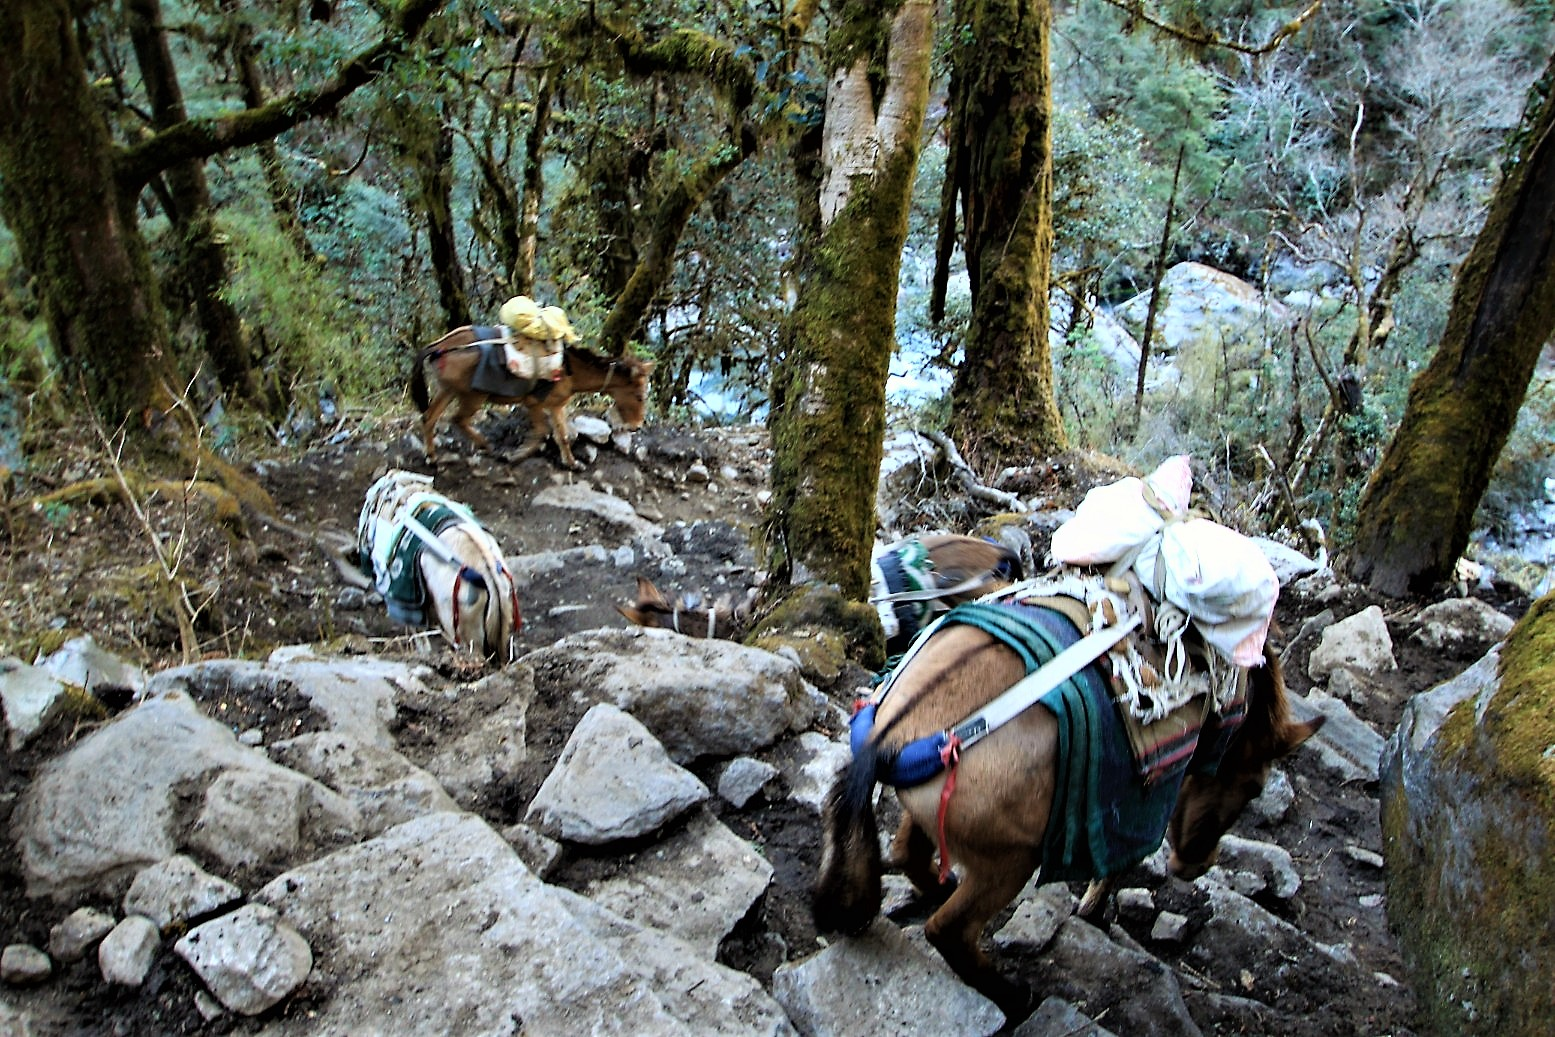 Mules carrying supplies